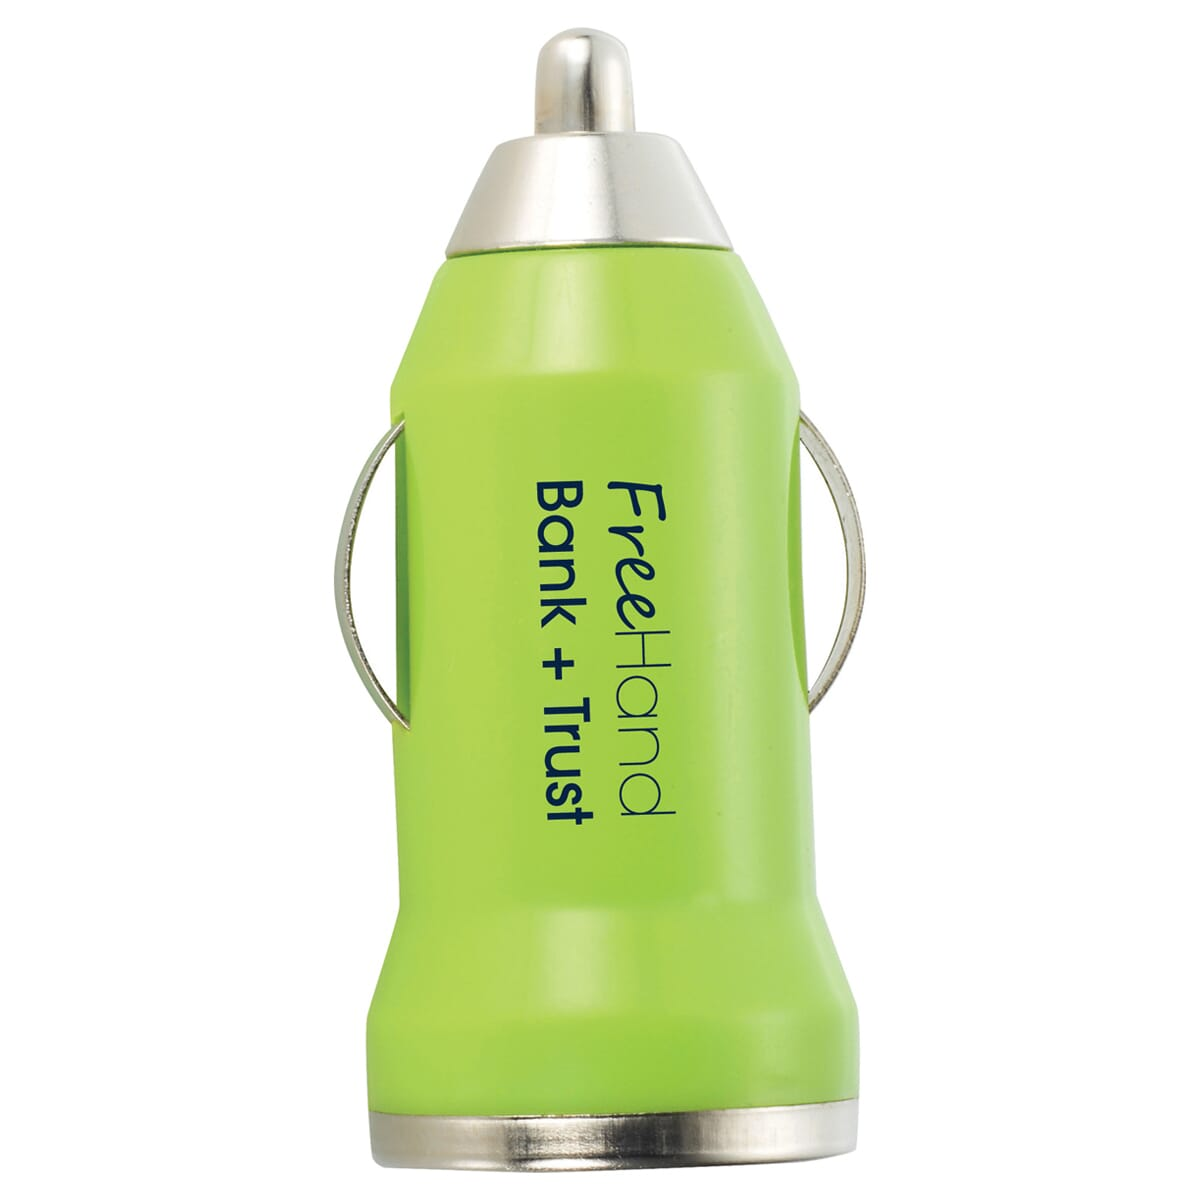 Mini car usb charger with logo